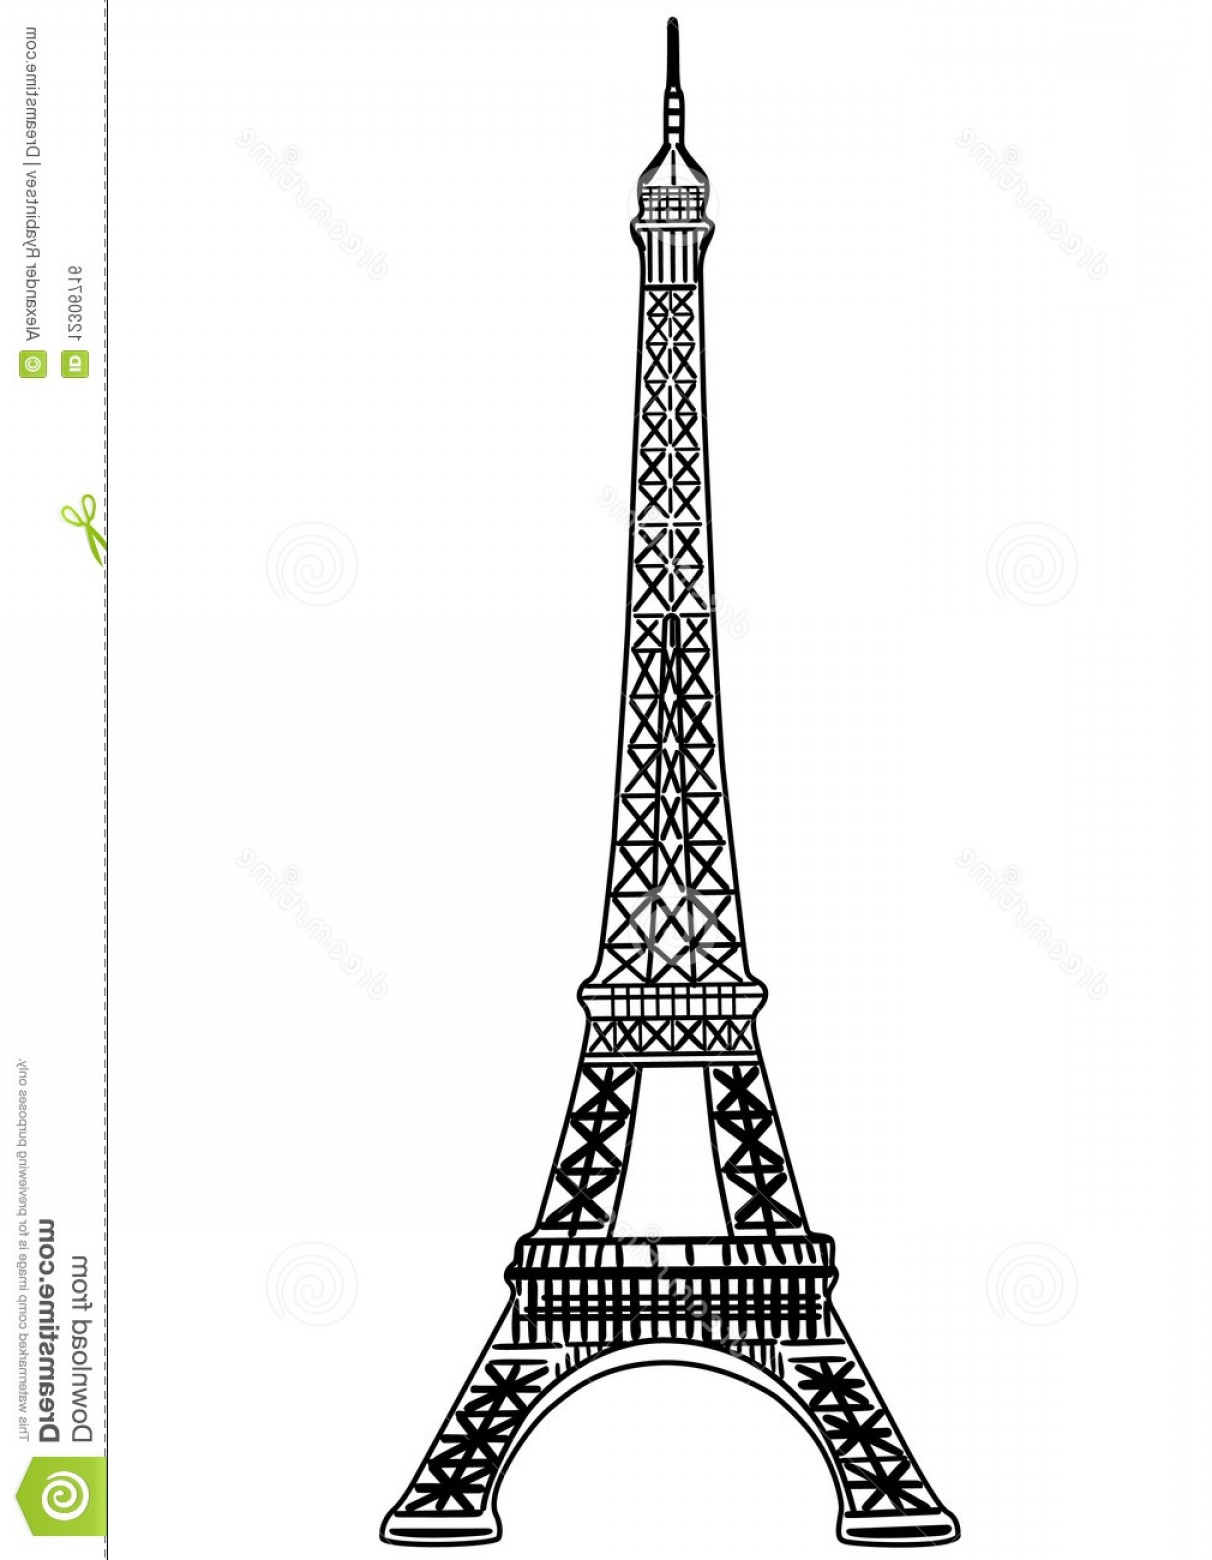 Royalty Free Stock Image Eiffel Tower Vector Illustration Image.